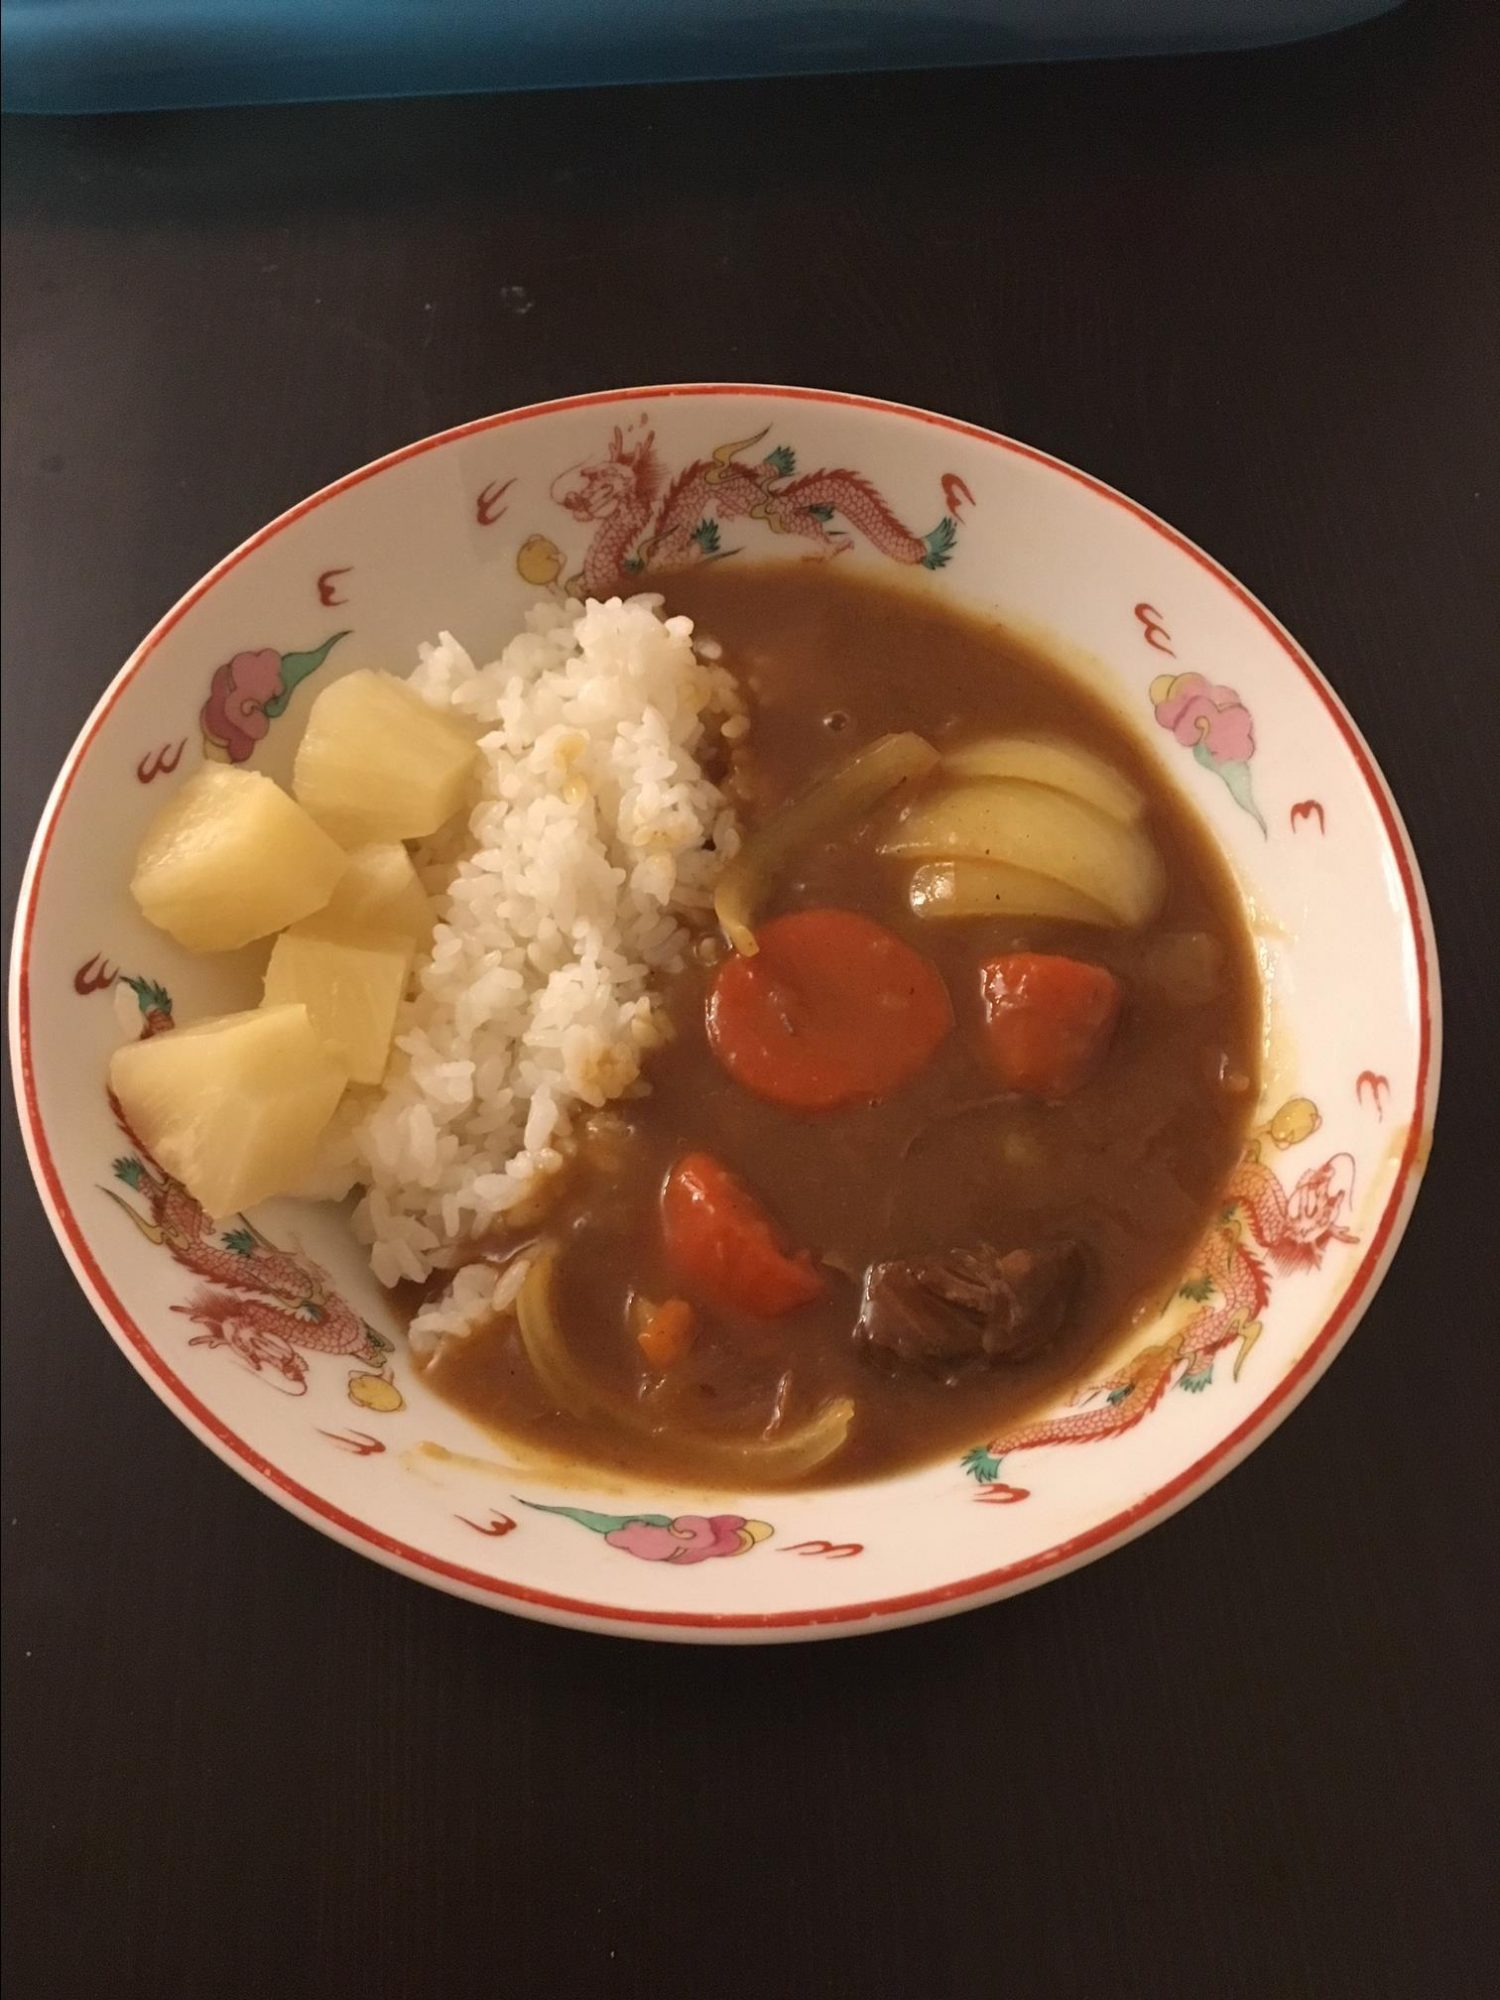 """""""Japanese curry is different from Indian or Thai curries,"""" explains MMSVA. """"It is more of a brown stew and it can be mild or spicy, depending on your tastes. The curry roux, from no heat to very spicy, can be bought at any international grocery store. It can be served over white rice or with udon noodles. This recipe is very flexible."""""""